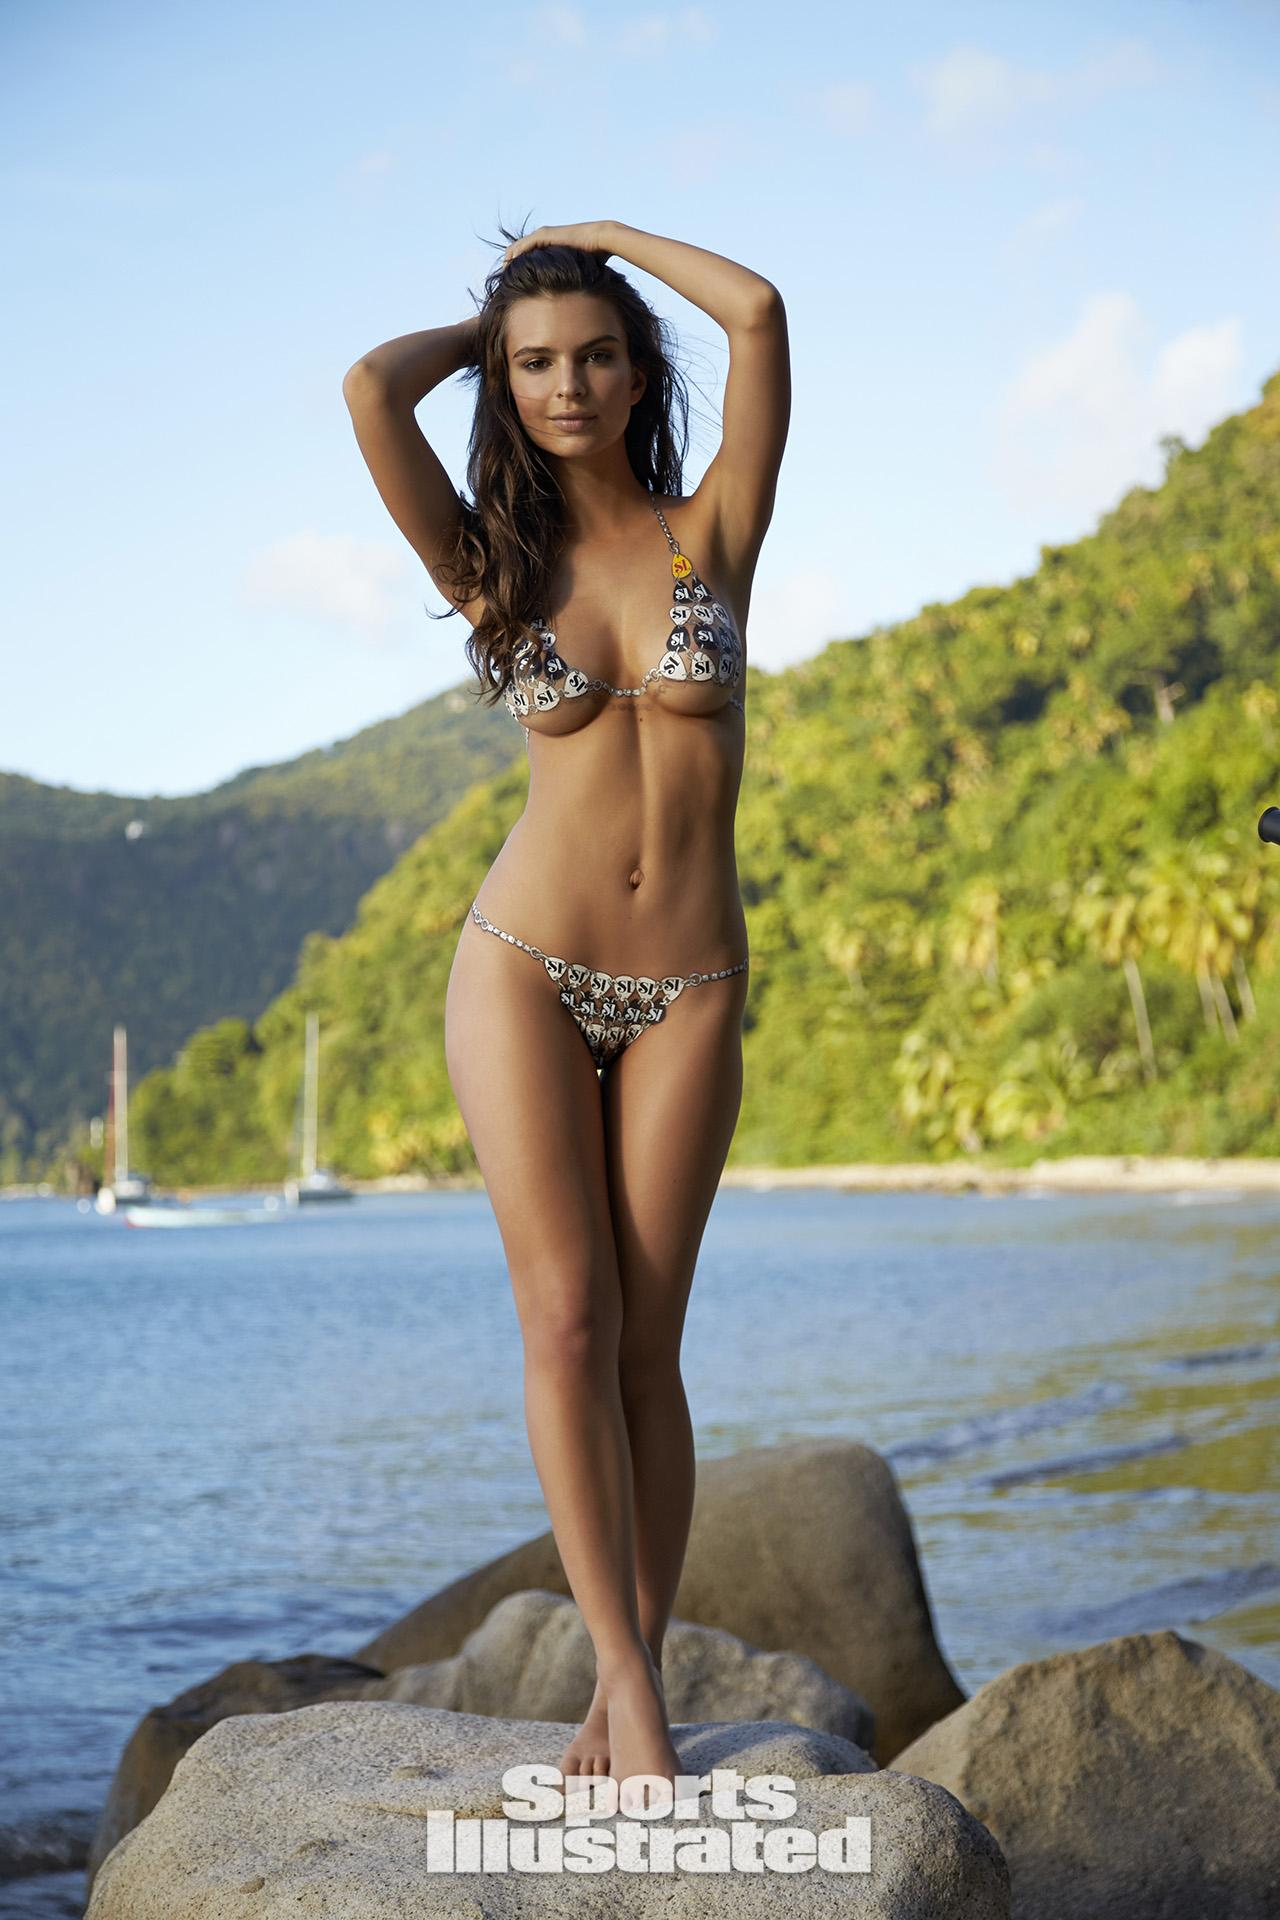 Swimsuit illustrated nude Nude Photos 44